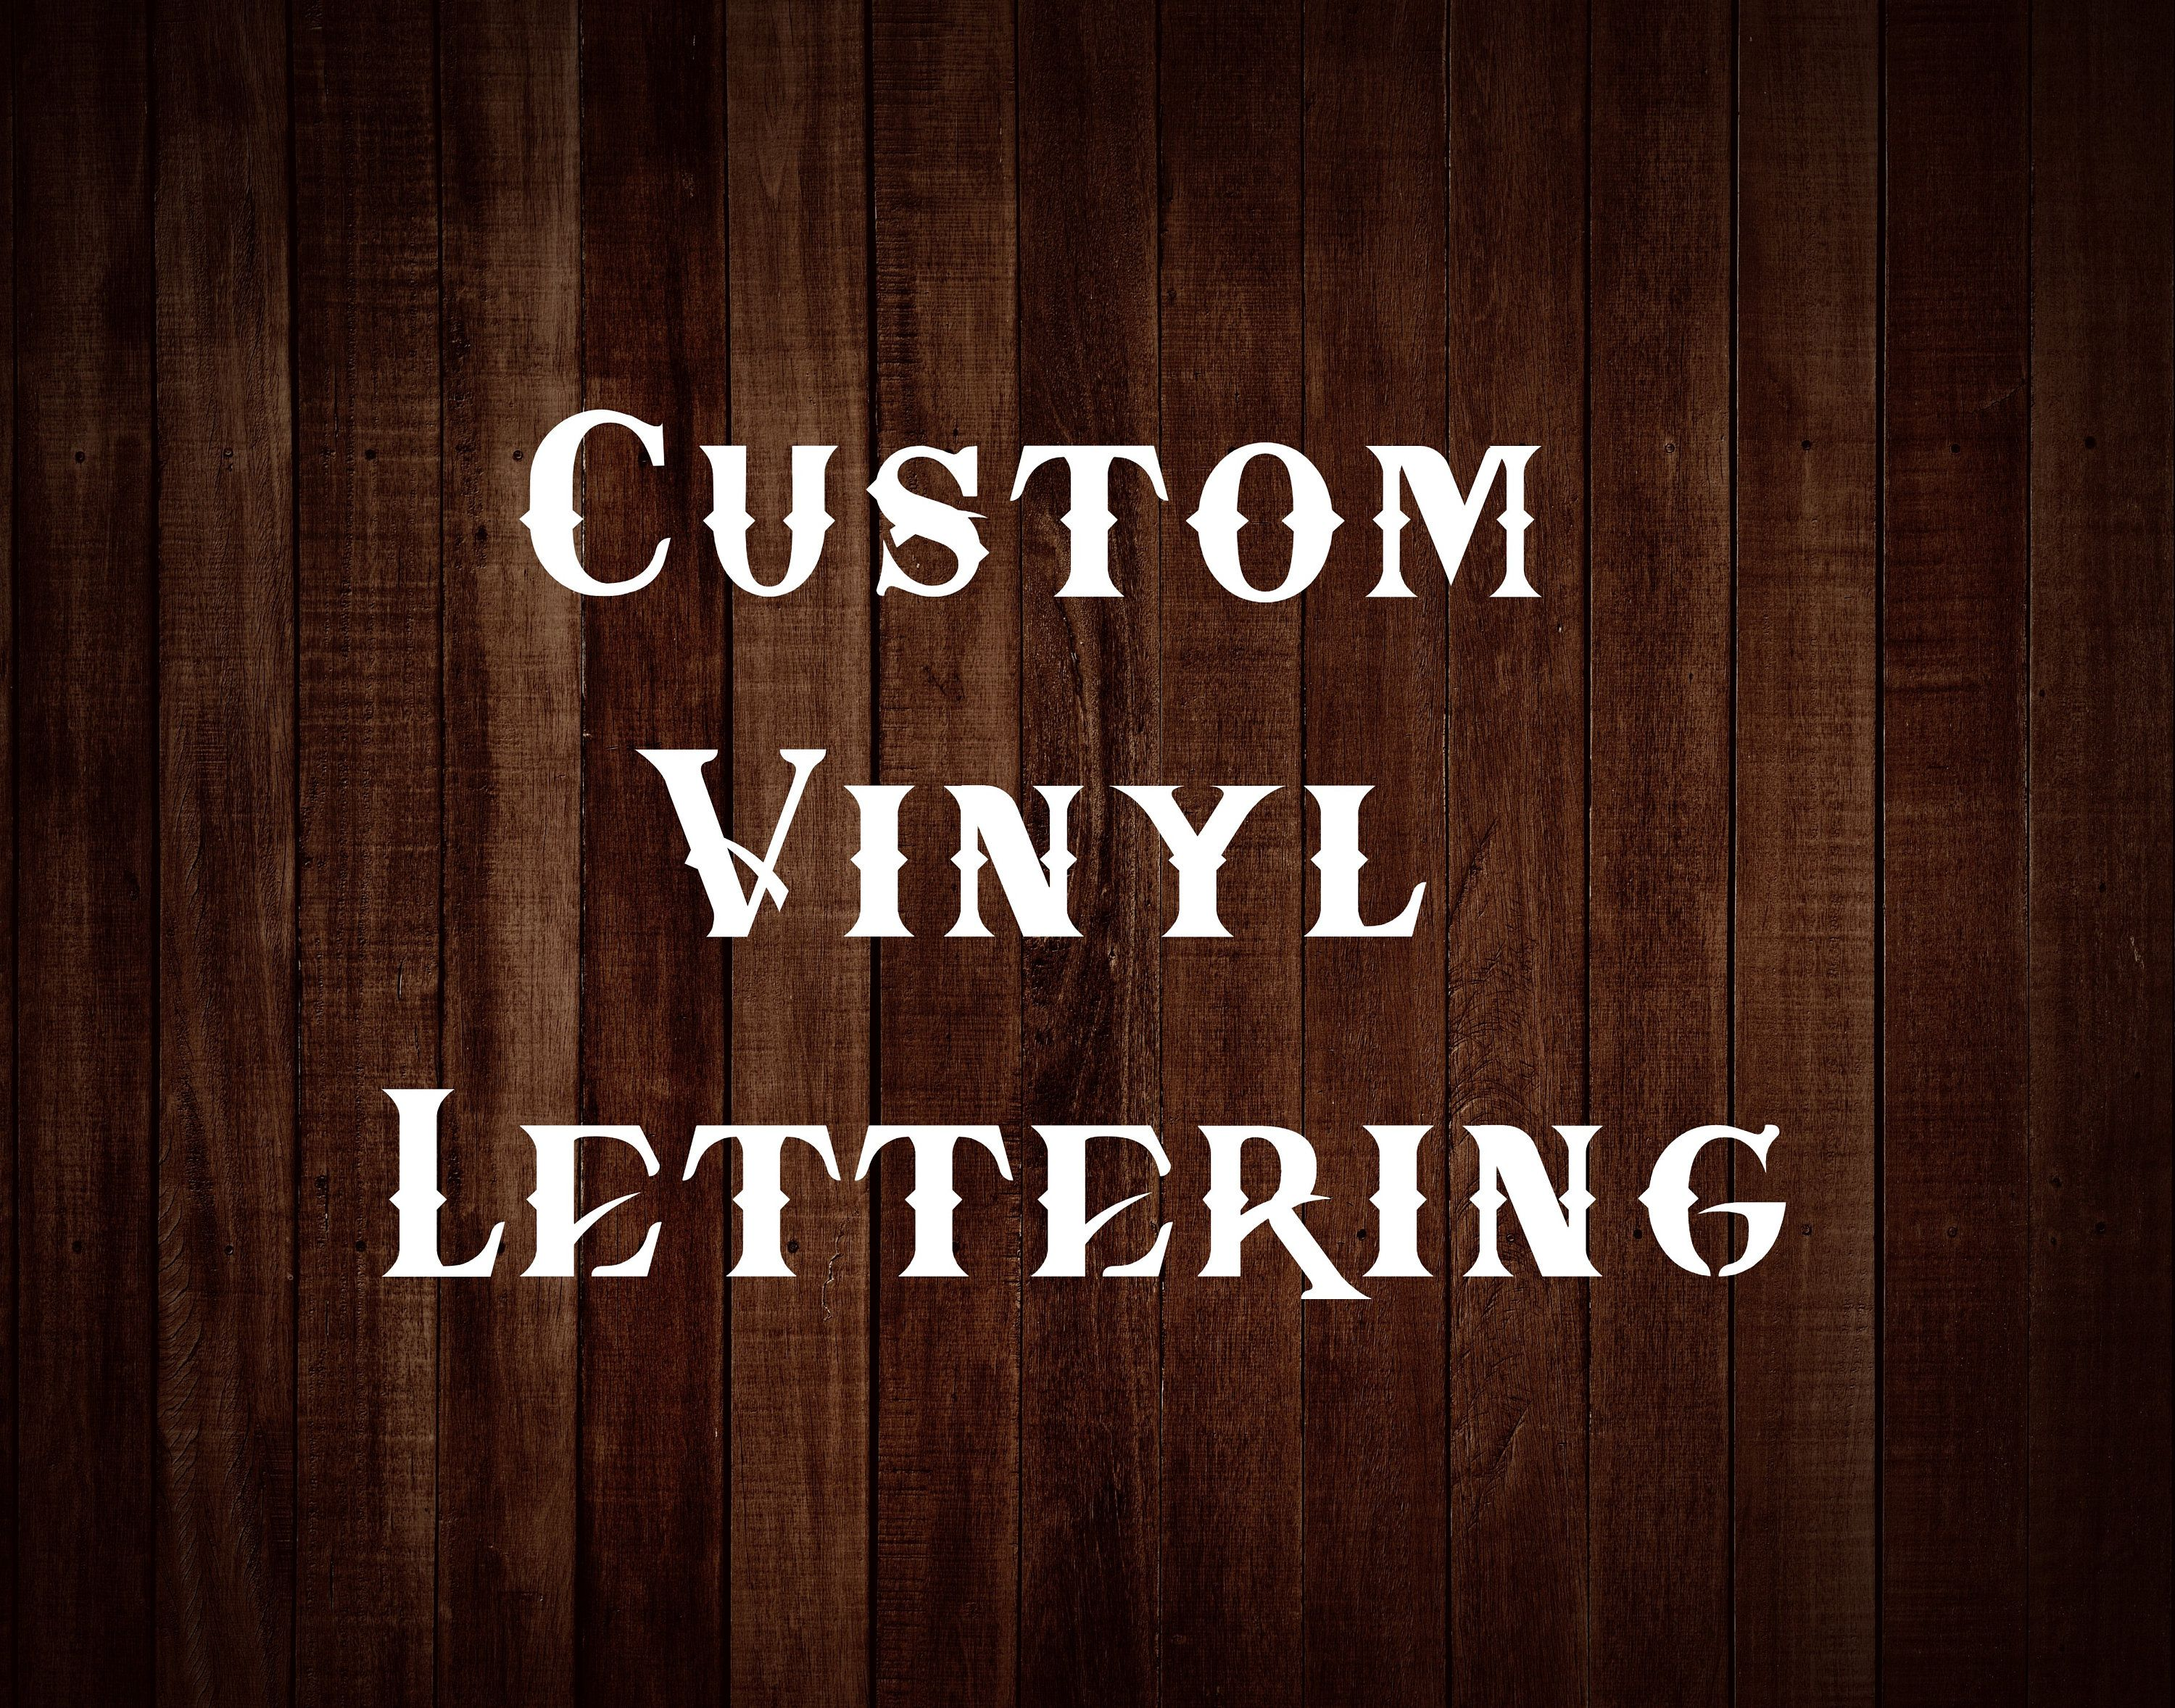 35+ Vinyl lettering decals for crafts ideas in 2021